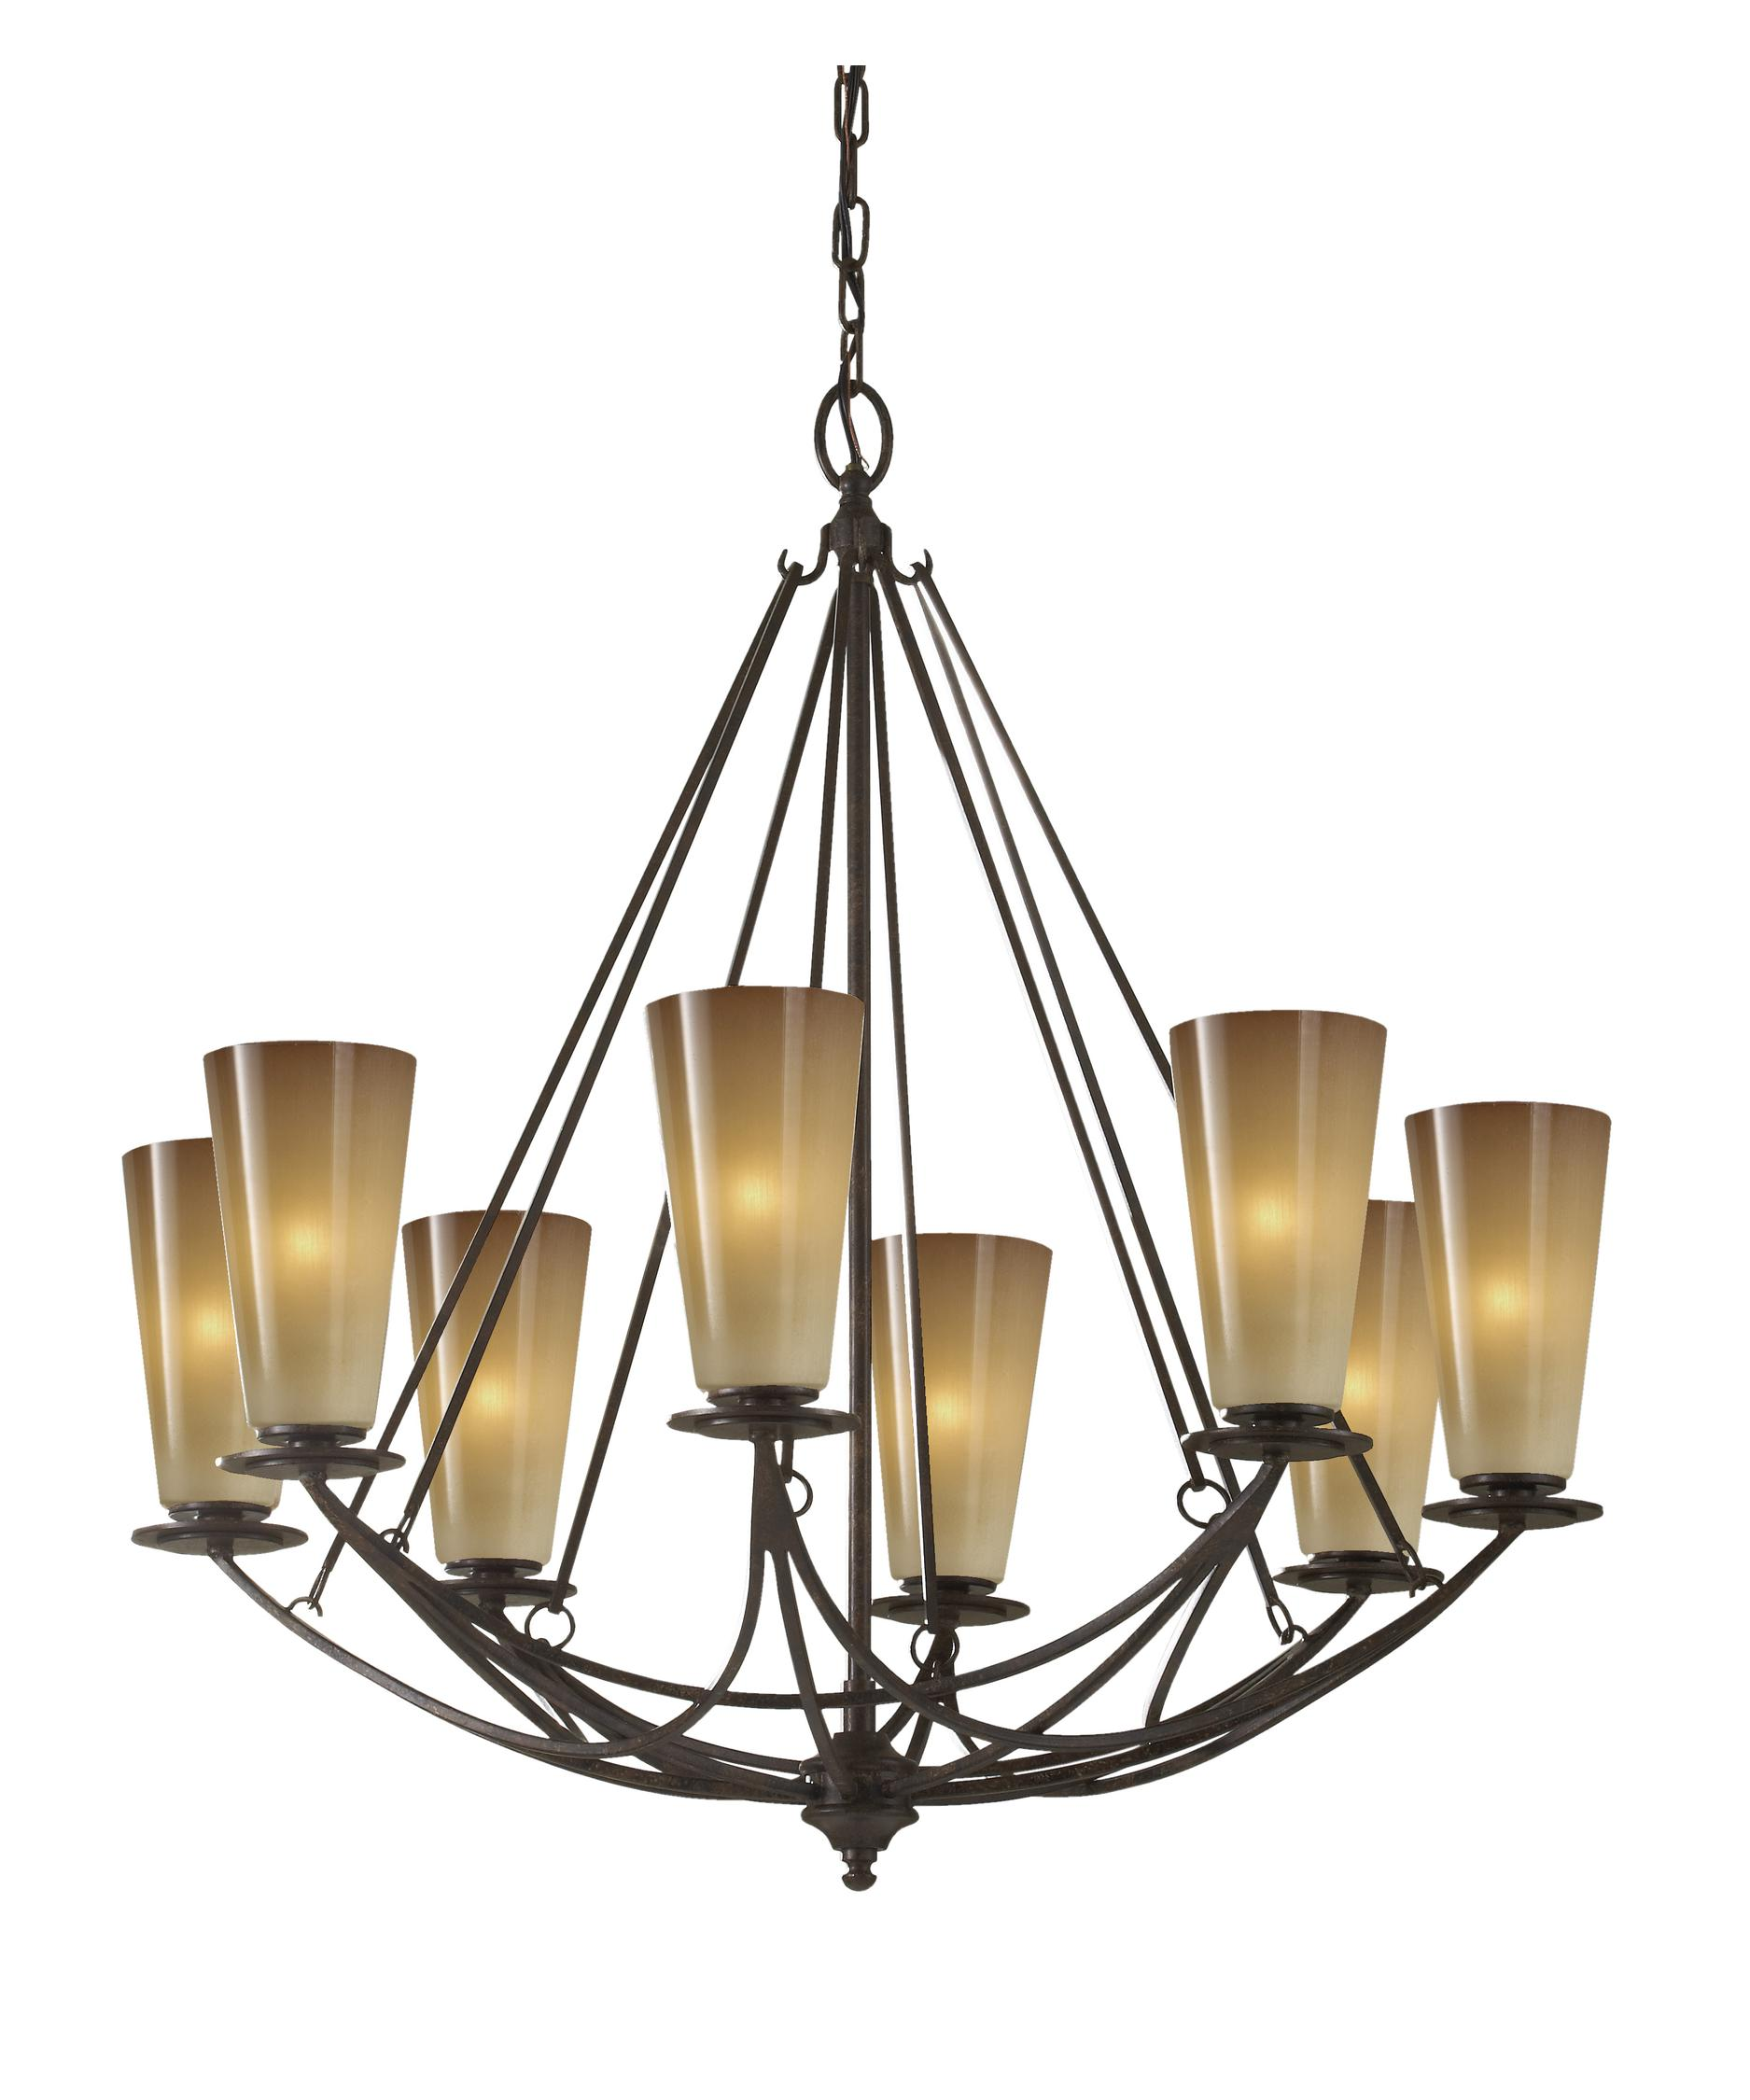 dinning manufacturers list modern murray lighting euro size feiss chandeliers underground ideas full room light formal kitchen brands landscape end high island style fixtures system dining of chandelier